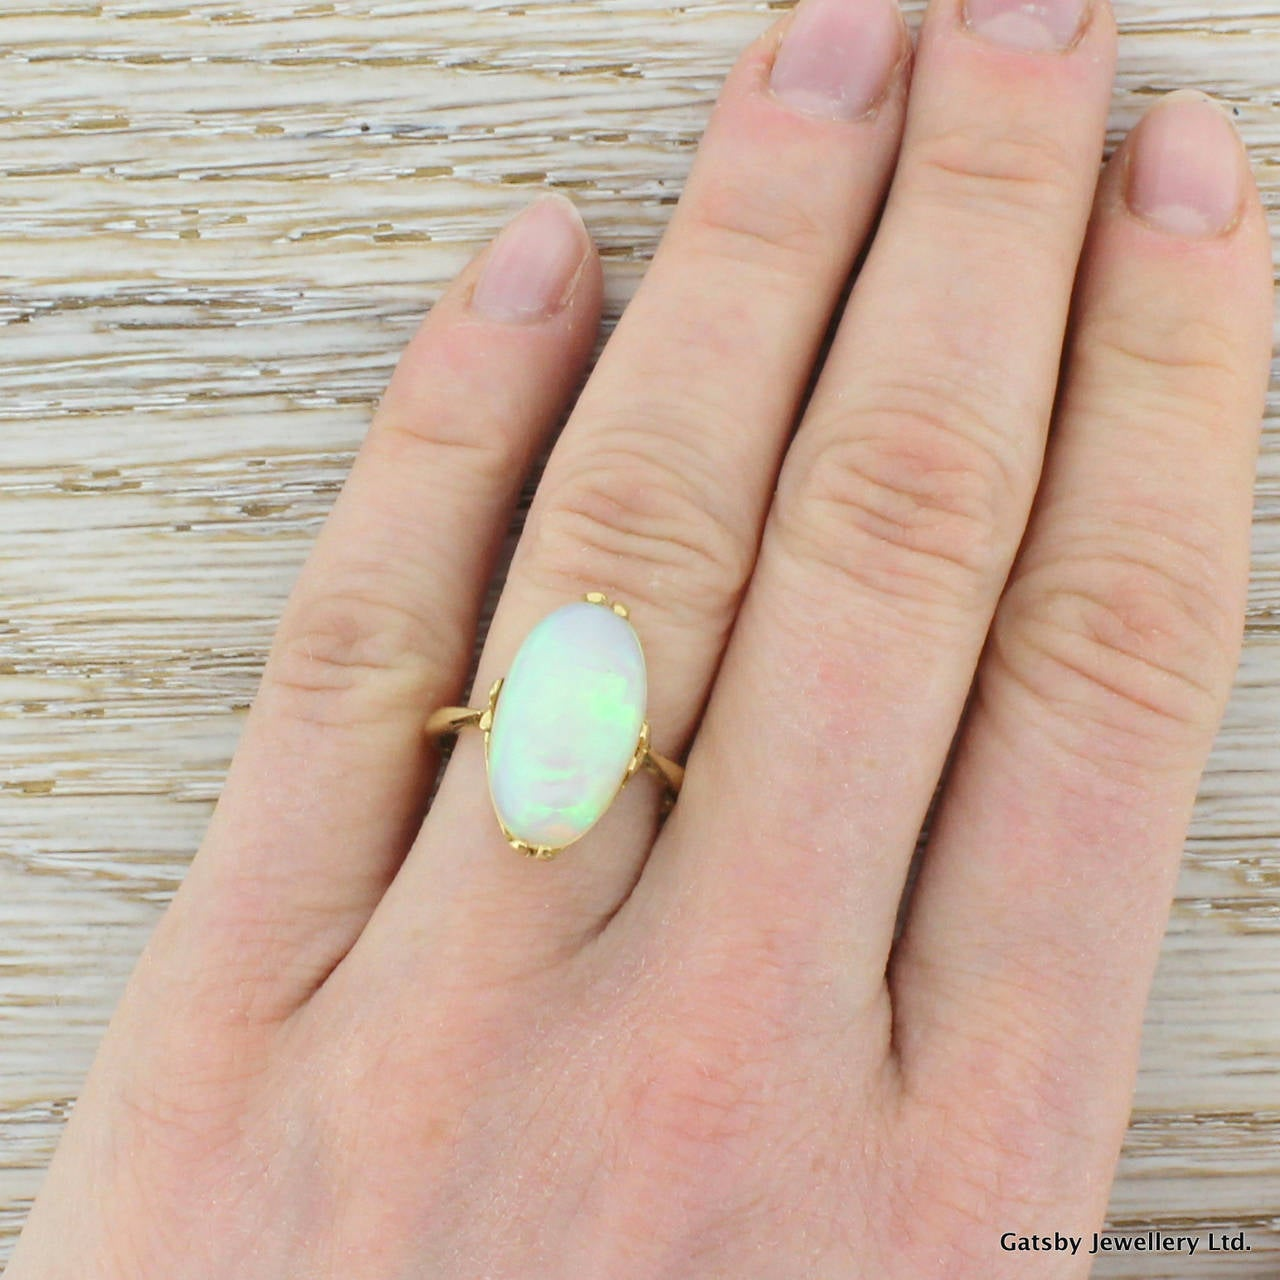 6.00 Carat Opal Gold Cocktail Ring 5